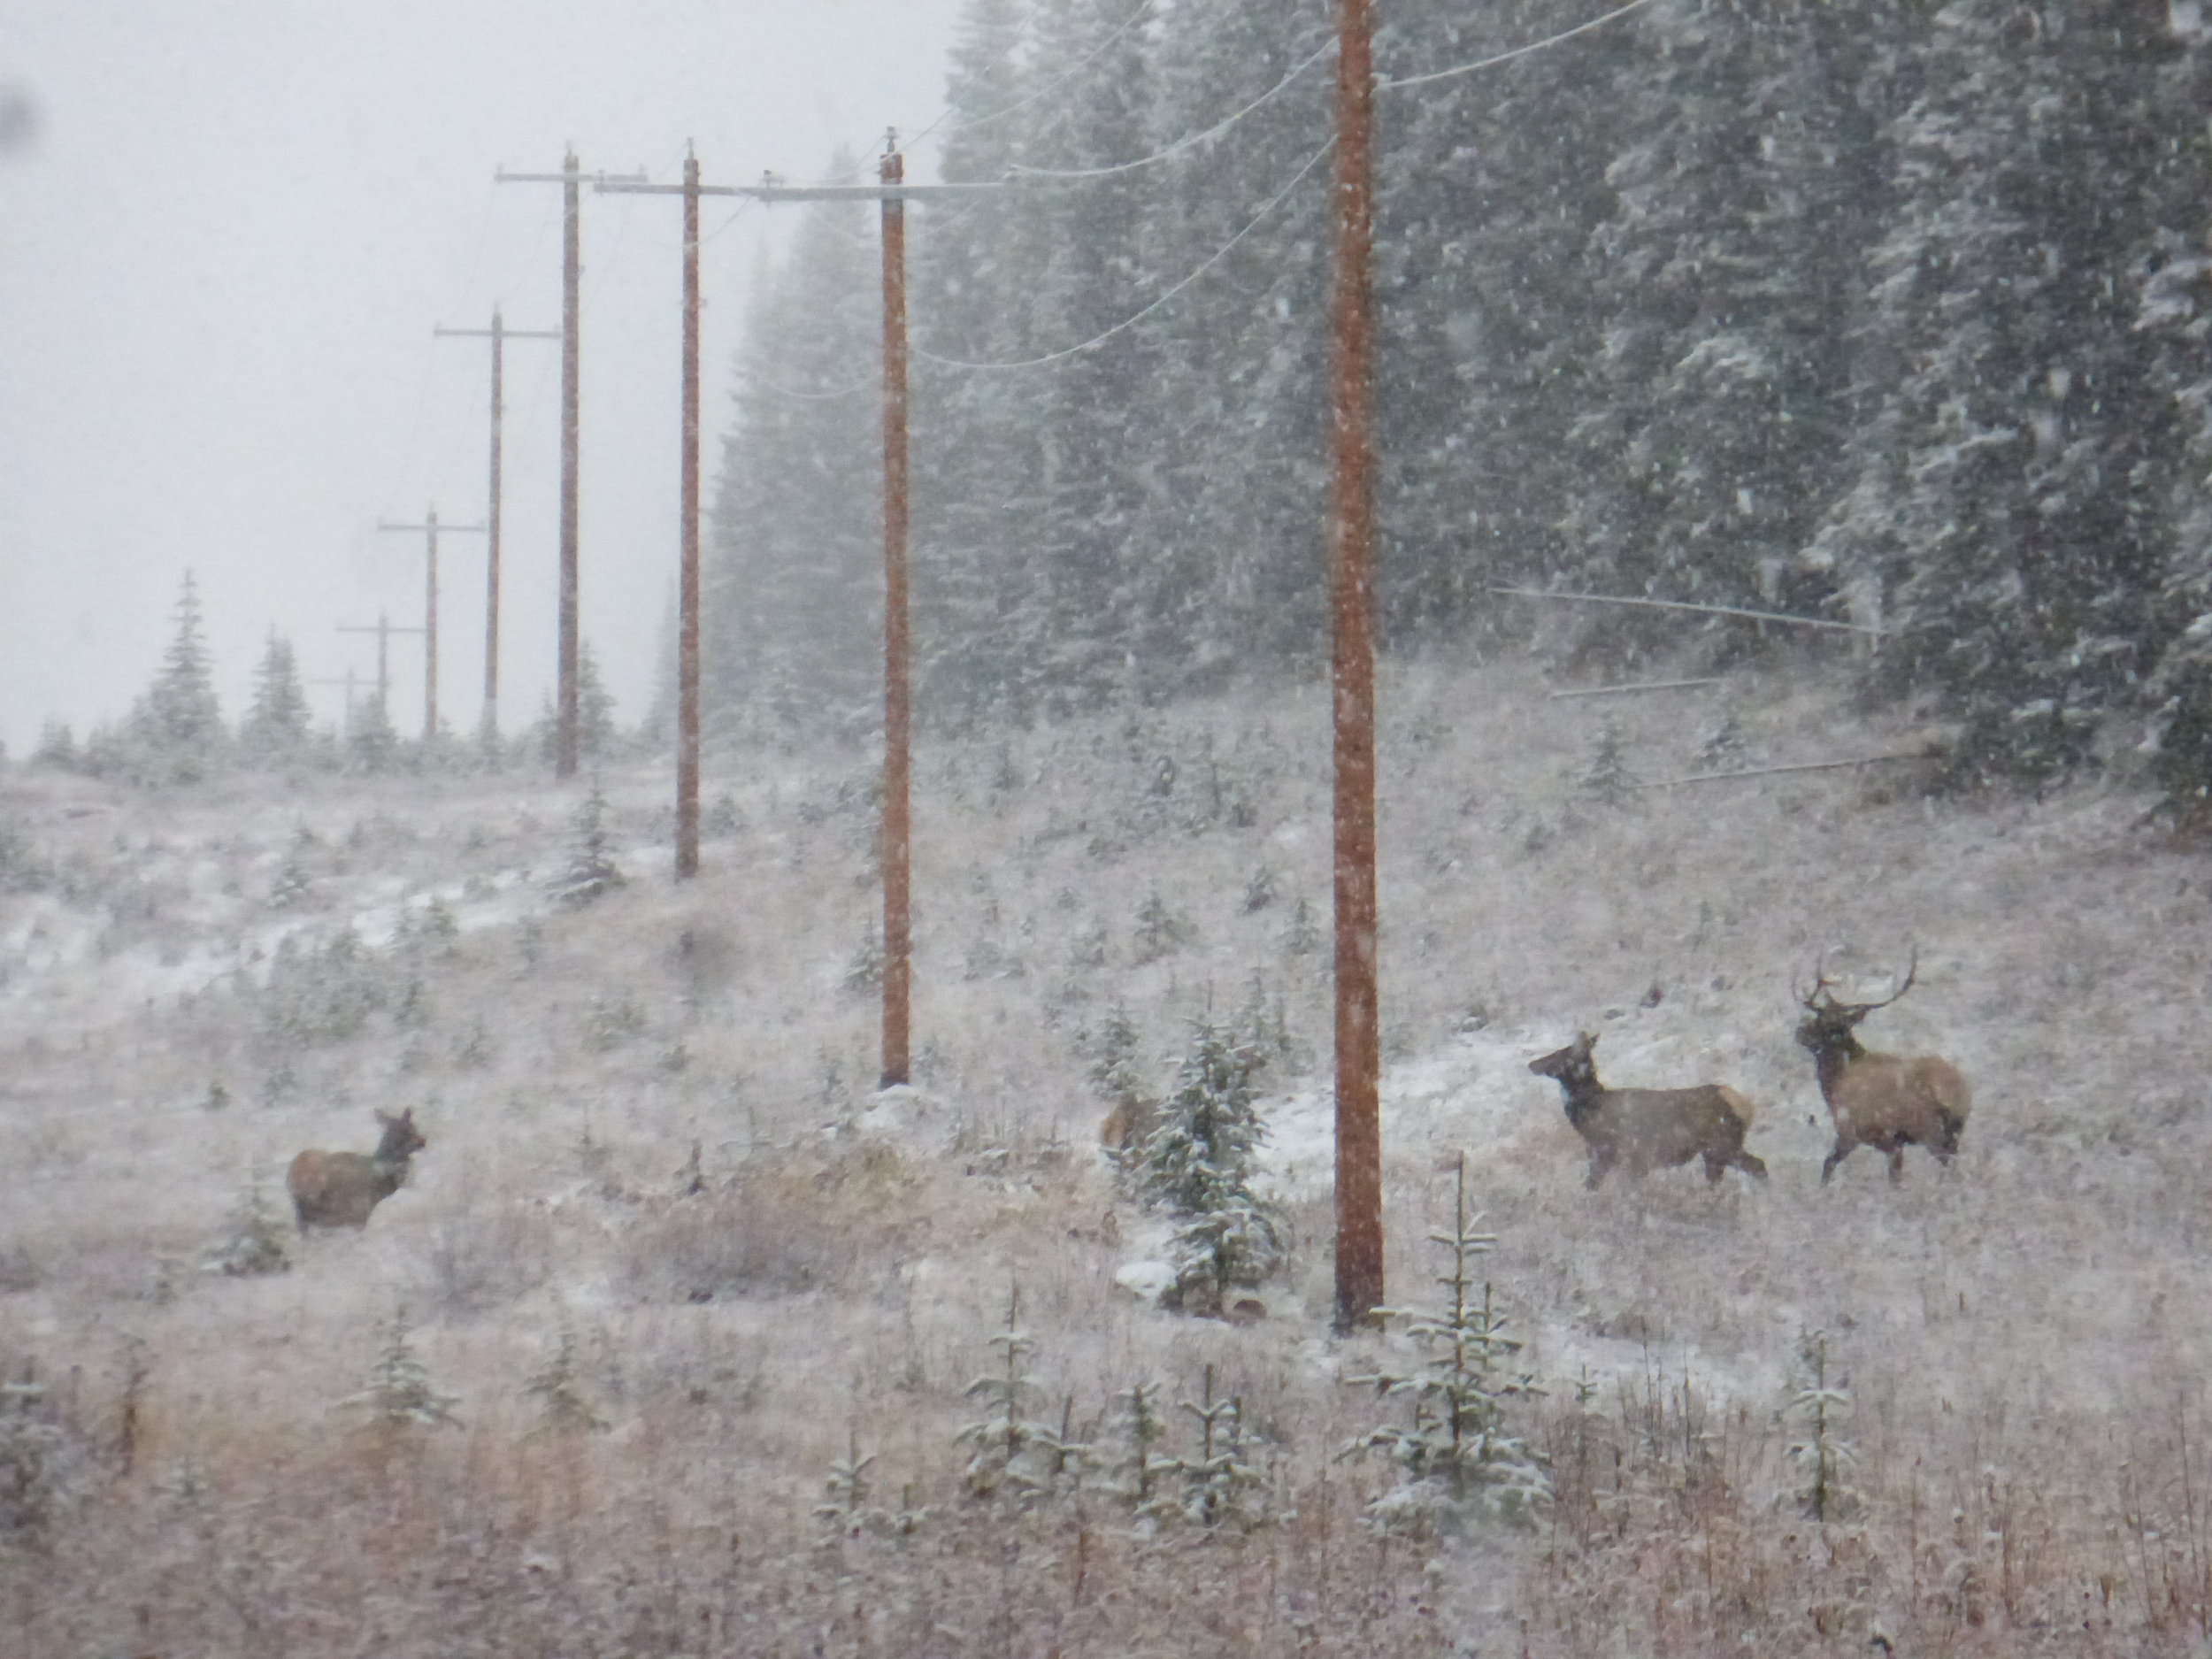 Some elk enjoying the snow, almost as much as me!